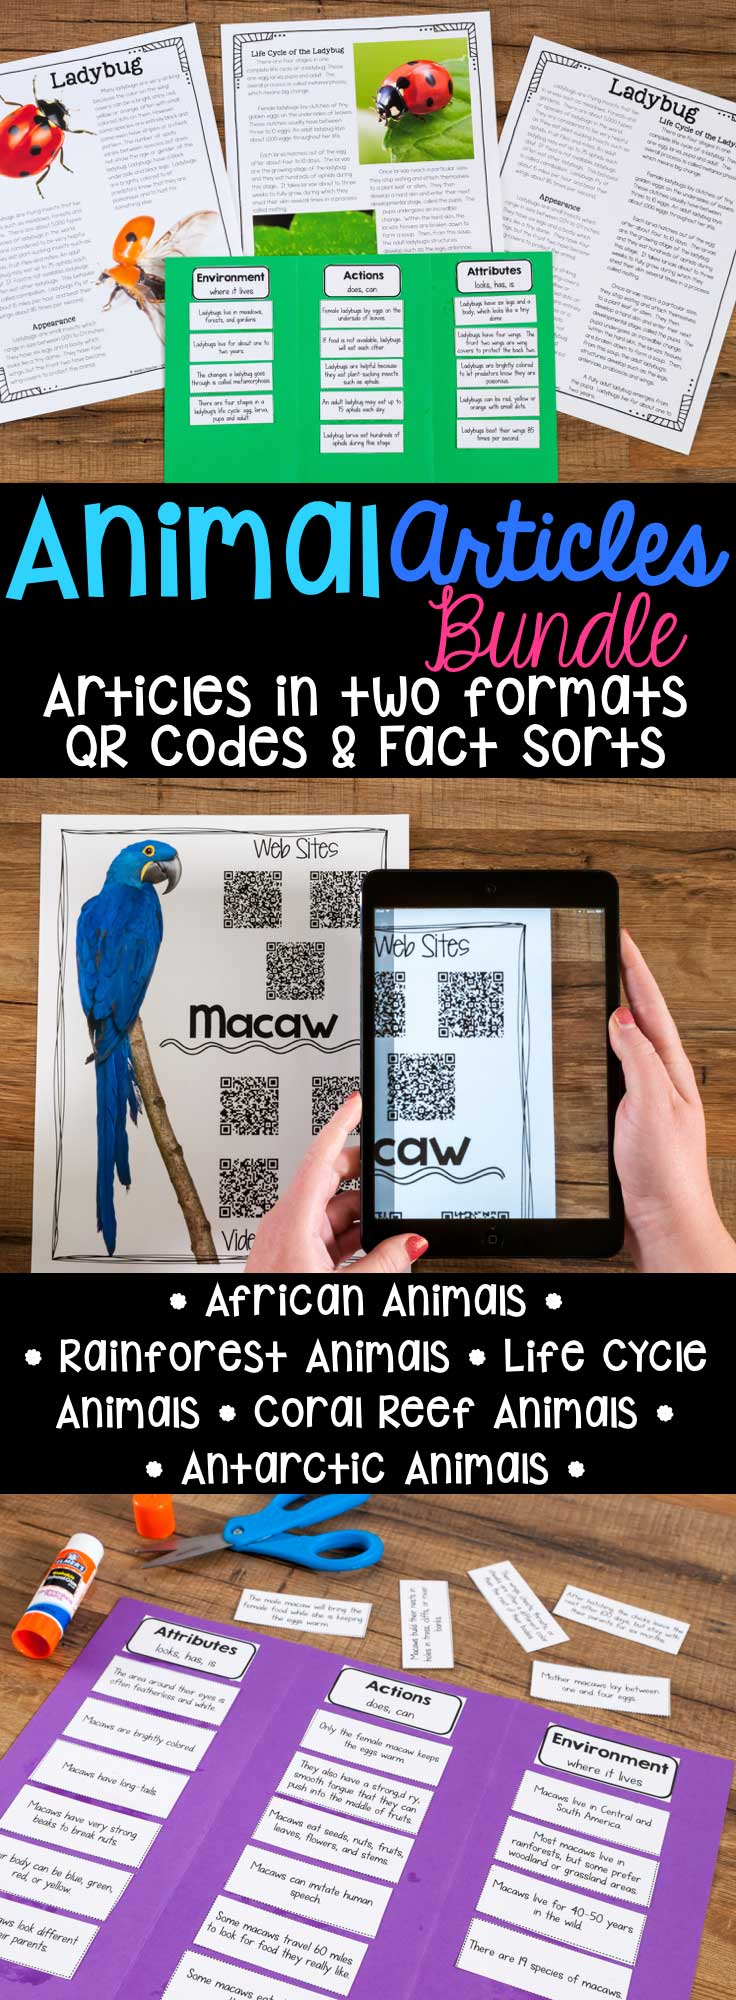 animal articles informational articles qr codes fact sorts animal articles informational article qr code research page fact sort is a bundle